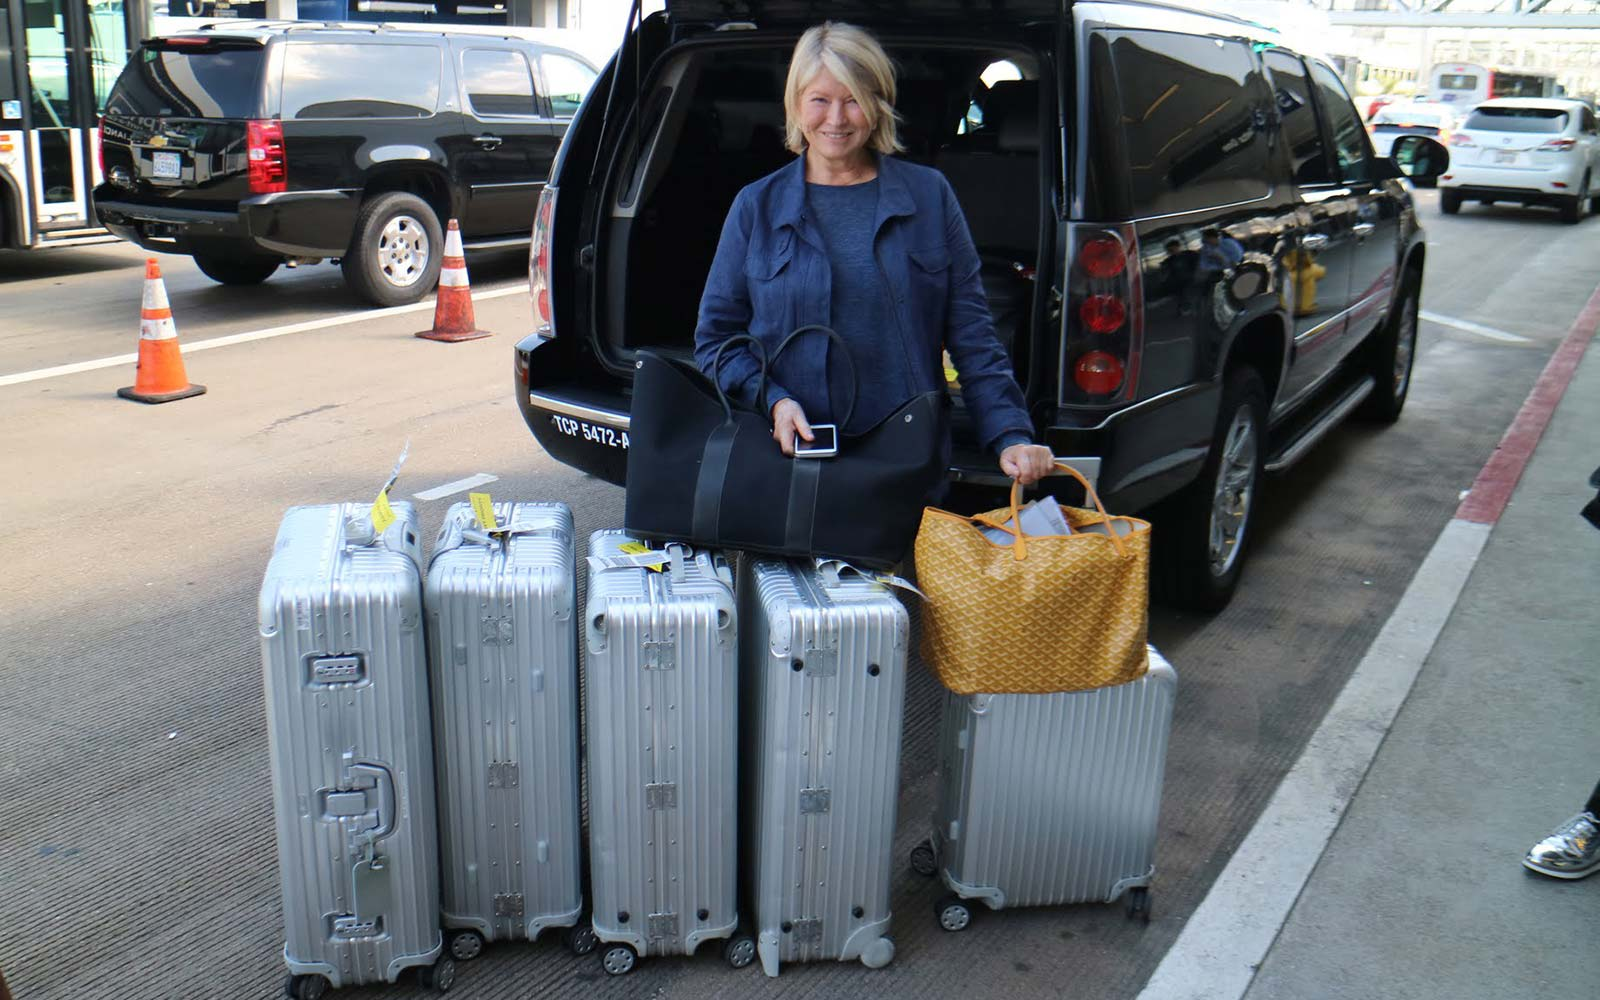 Martha Stewart Travel Airport rimowa luggage